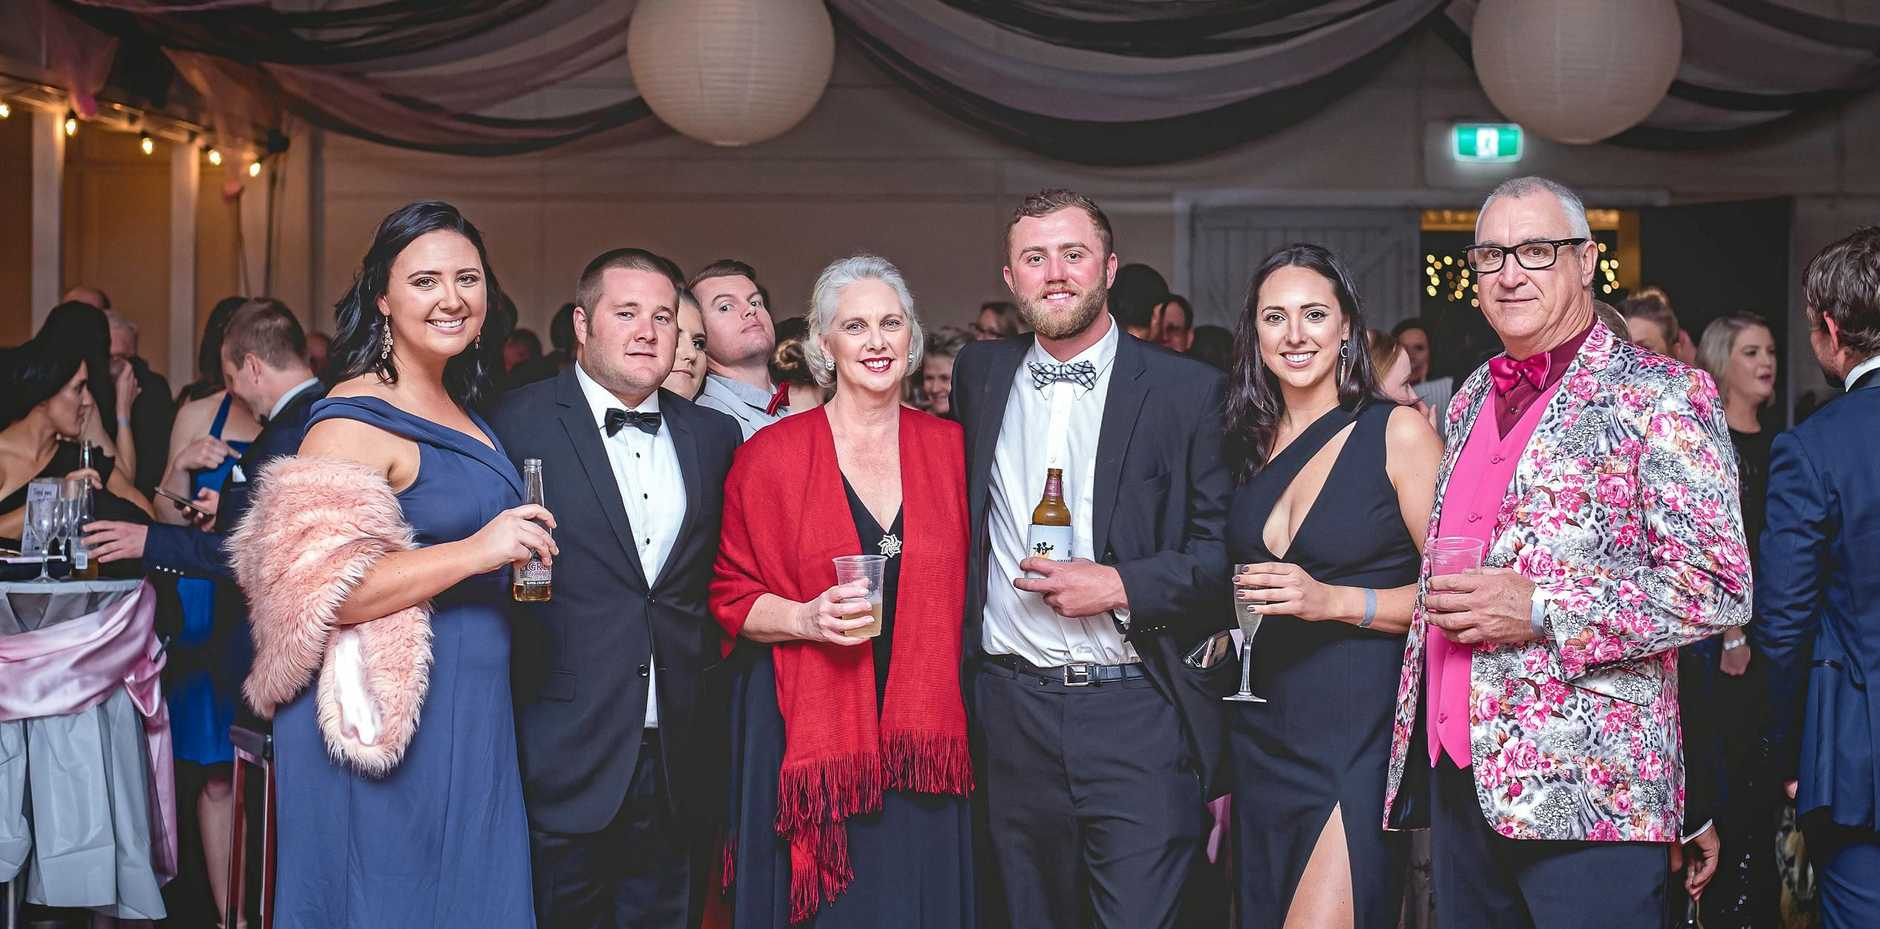 FLYING SUCCESS: The first Morven winter ball raised an unprecedented amount for the Royal Flying Doctor Service, with support from the entire town.